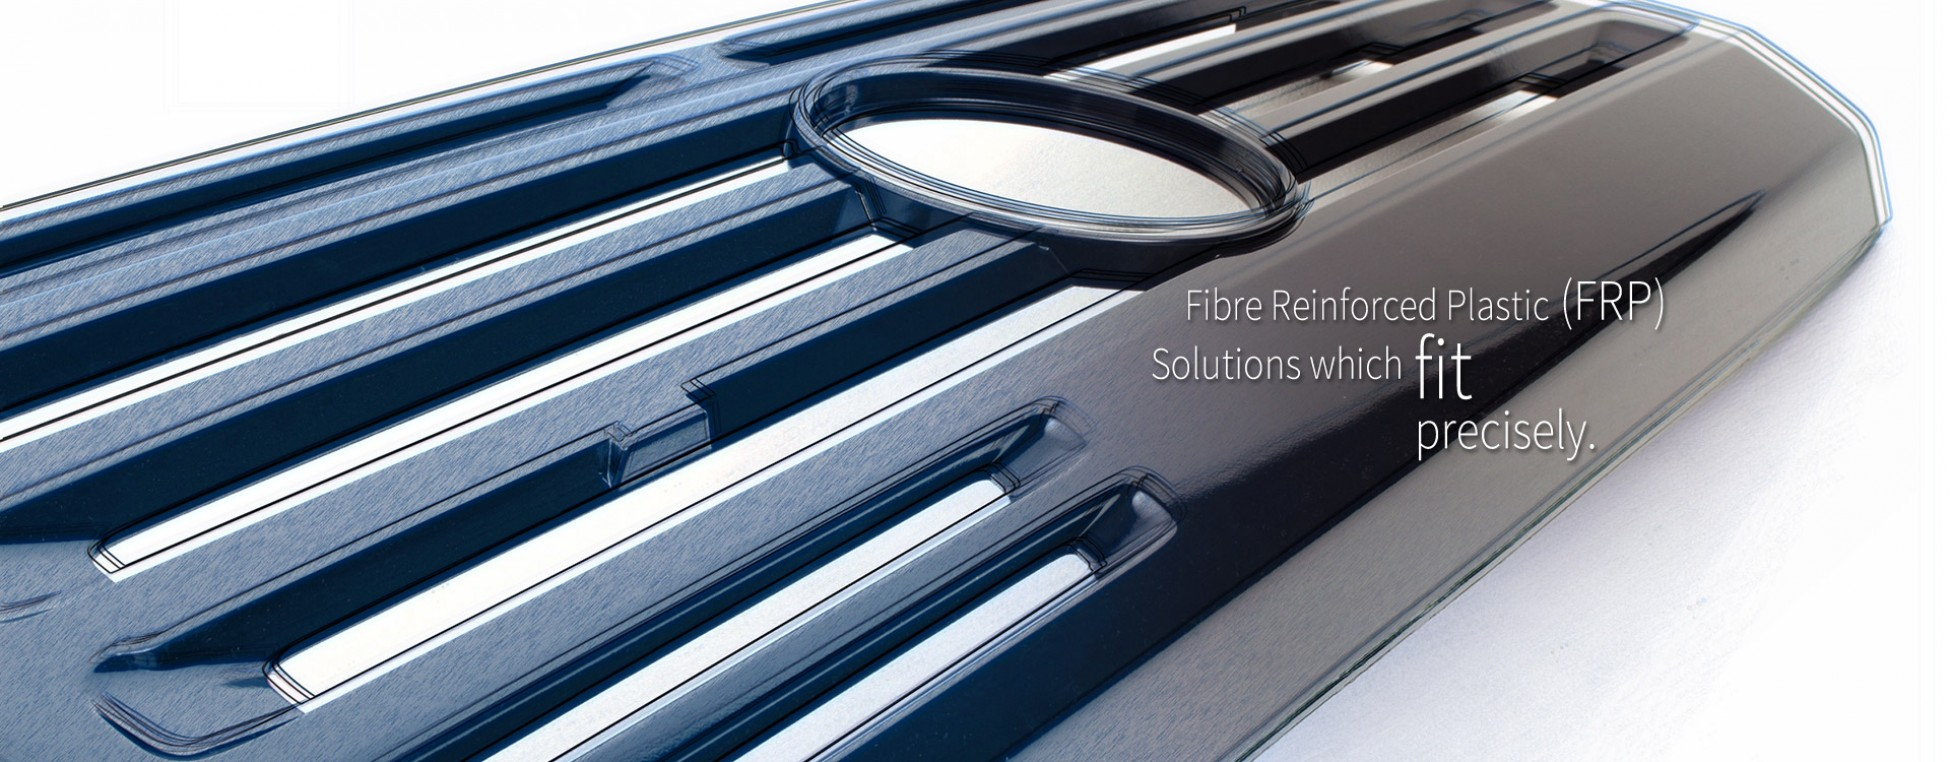 Compotech - Fibre Reinforced Plastic (FRP): Solutions which fit precisely.